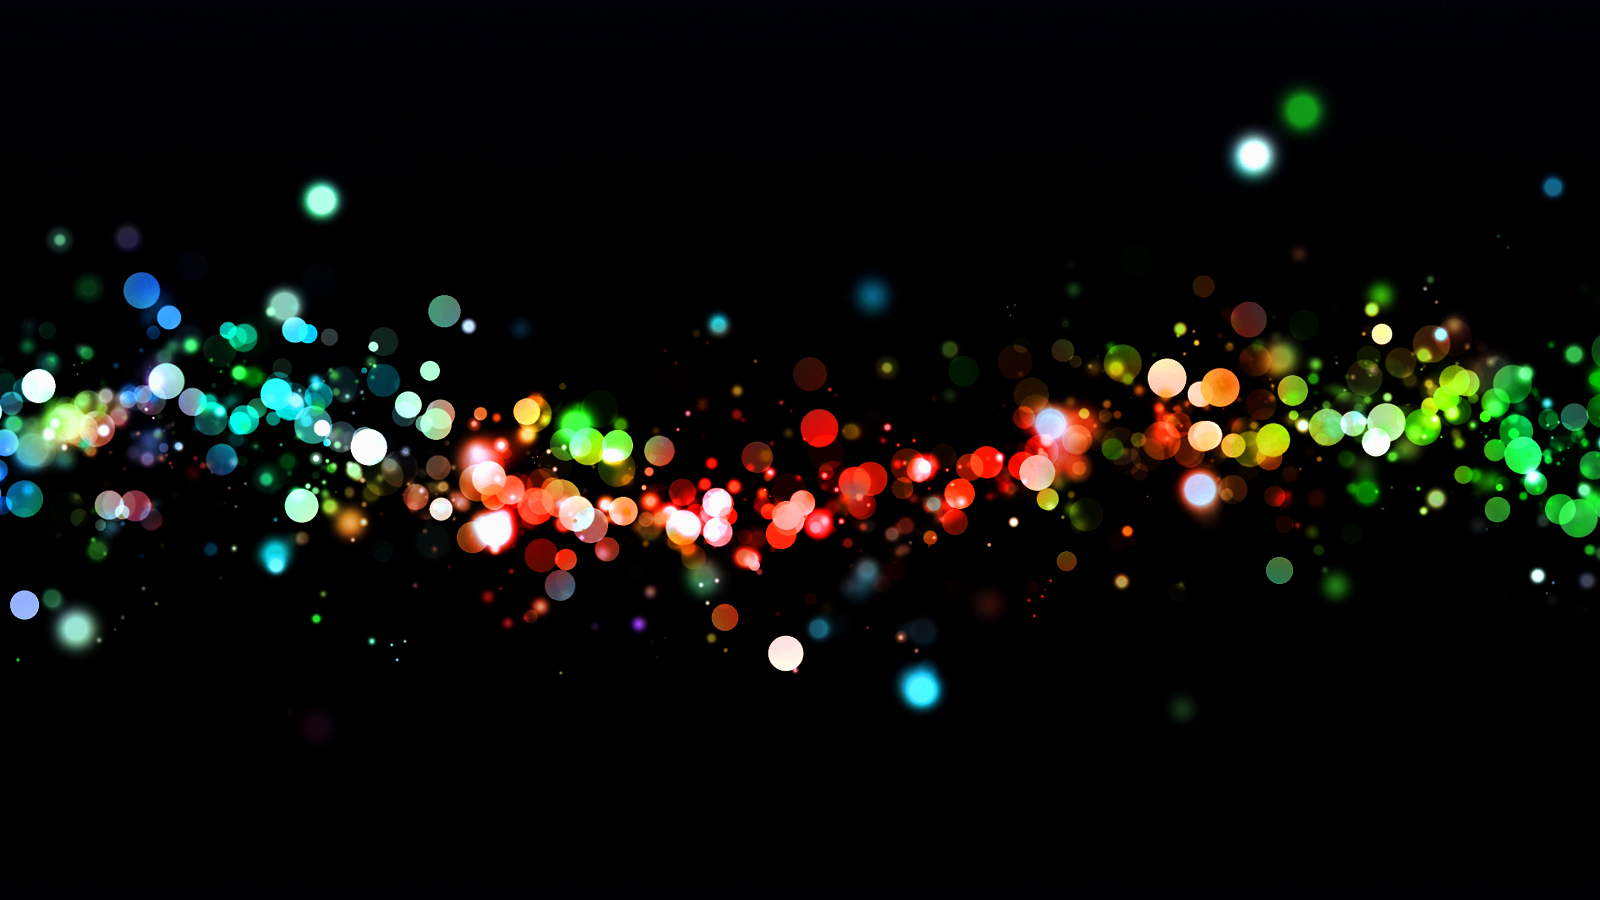 Light Circles Bokeh HD Wallpapers Download Wallpapers in 1600x900